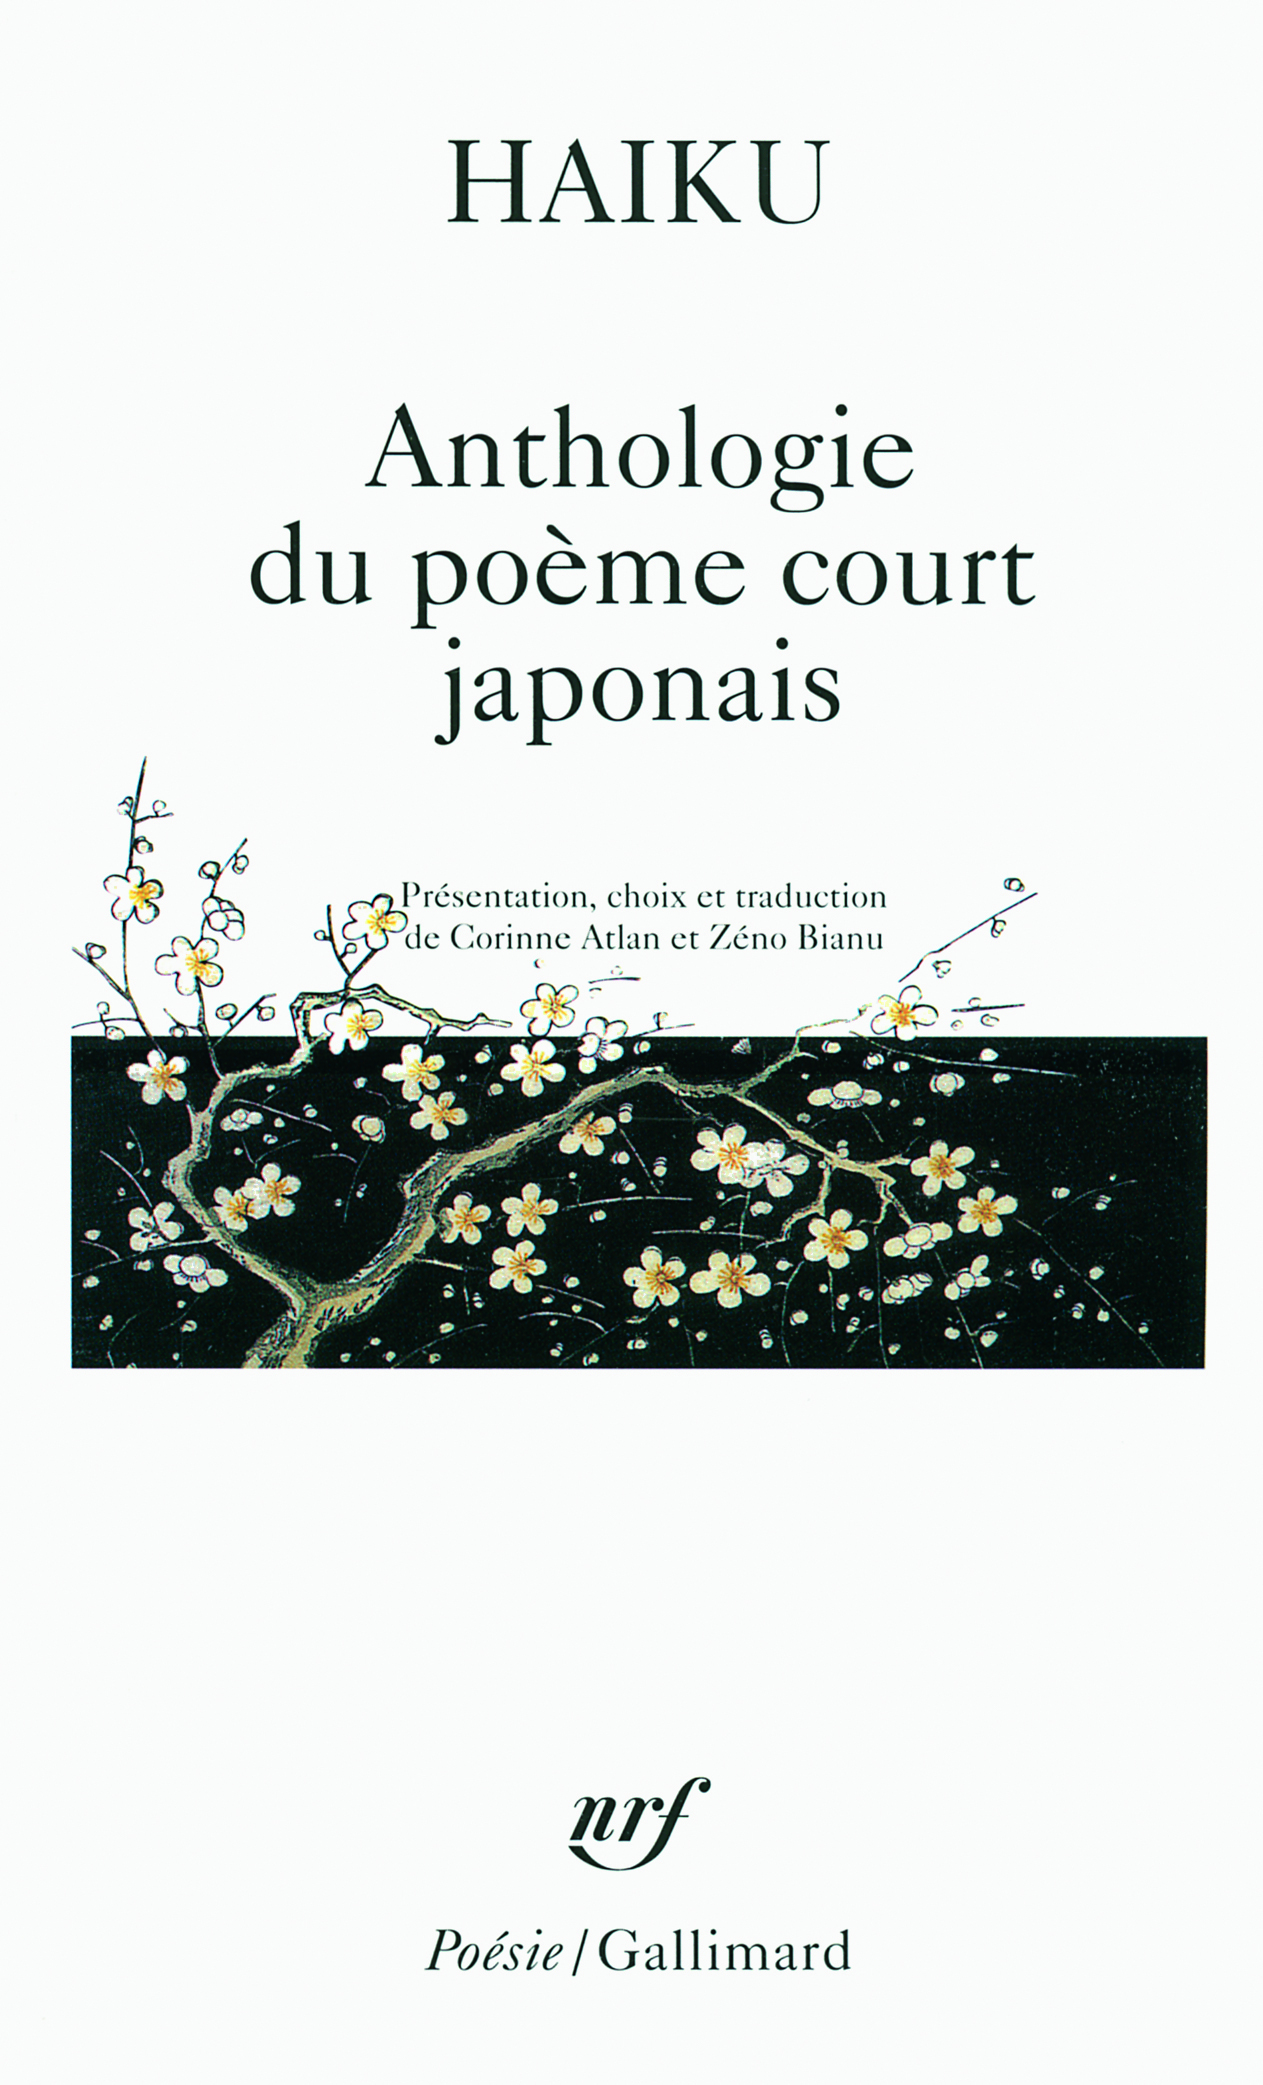 HAIKU ANTHOLOGIE DU POEME COURT JAPONAIS